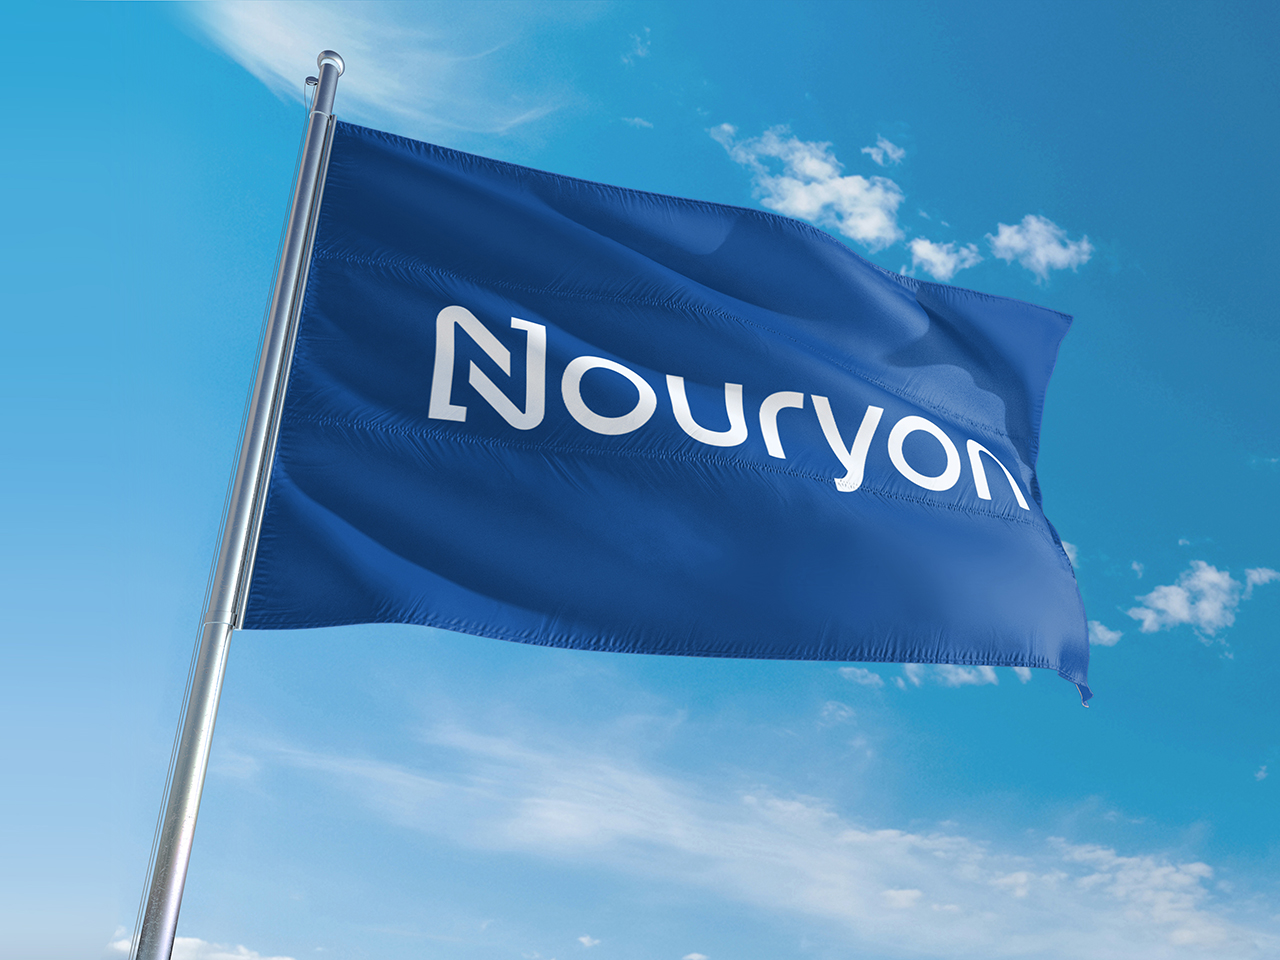 On 1 July 2020, Nouryon announced the completion of the spin-out of its base chemicals business into the new company Nobian. (Source: Nouryon)